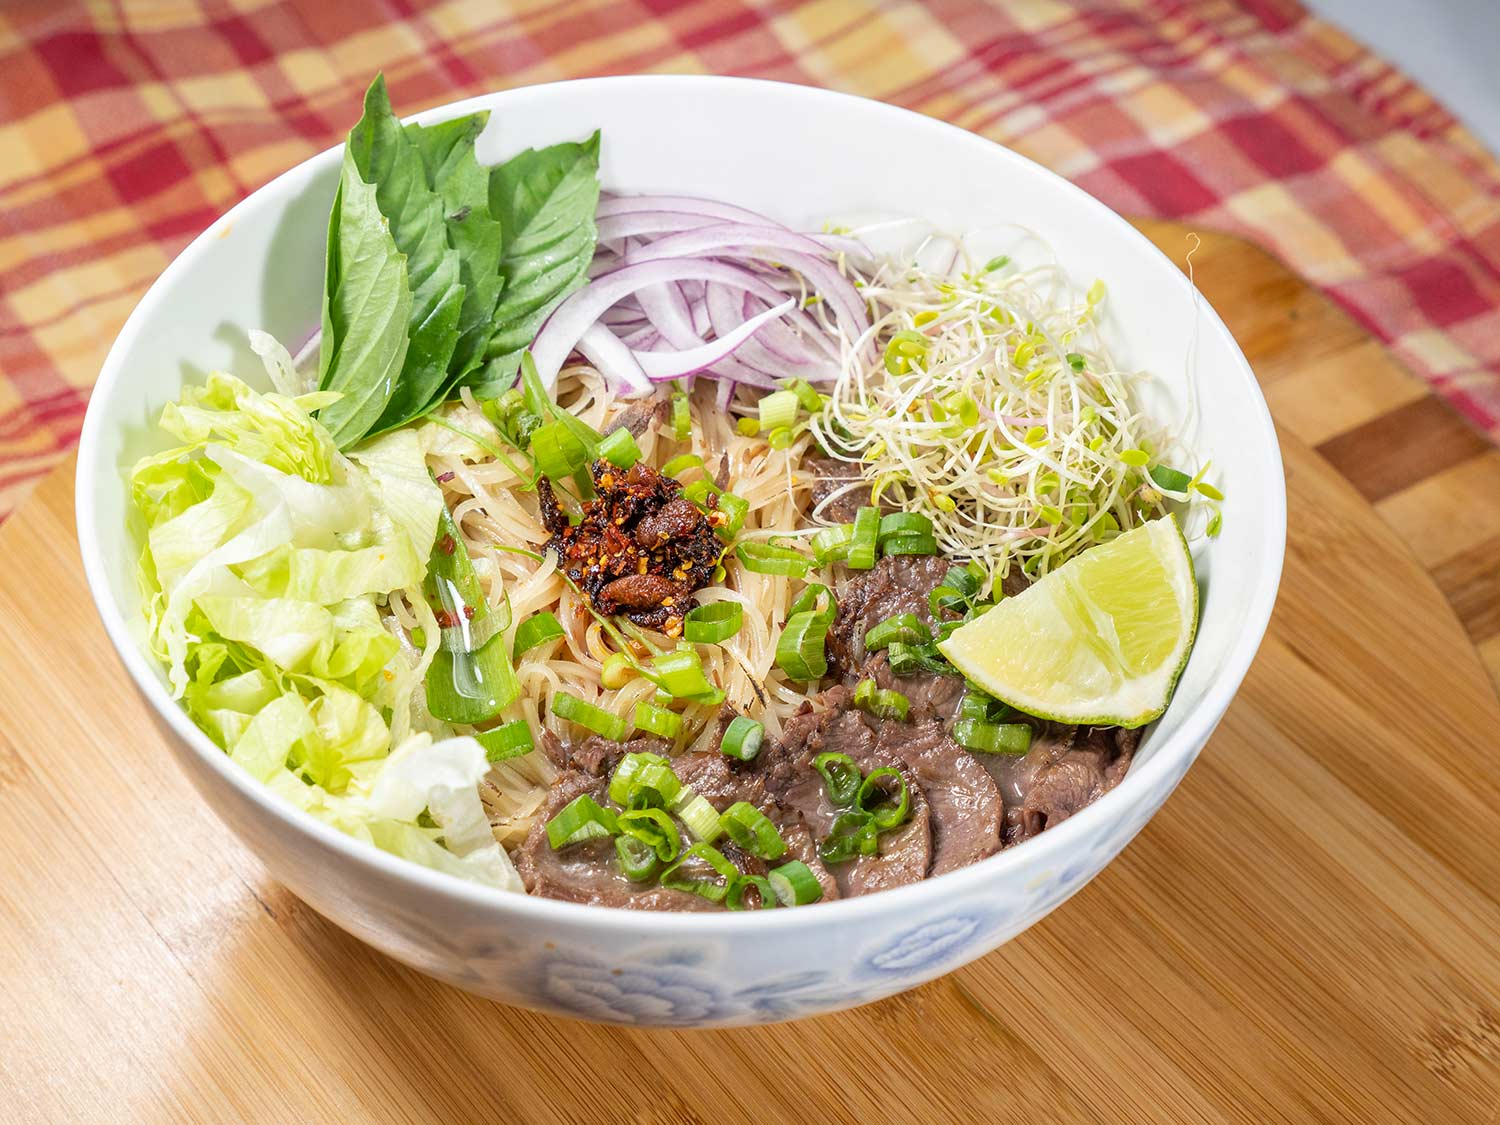 A warm bowl of pho is a restorative meal on a cold winter night.